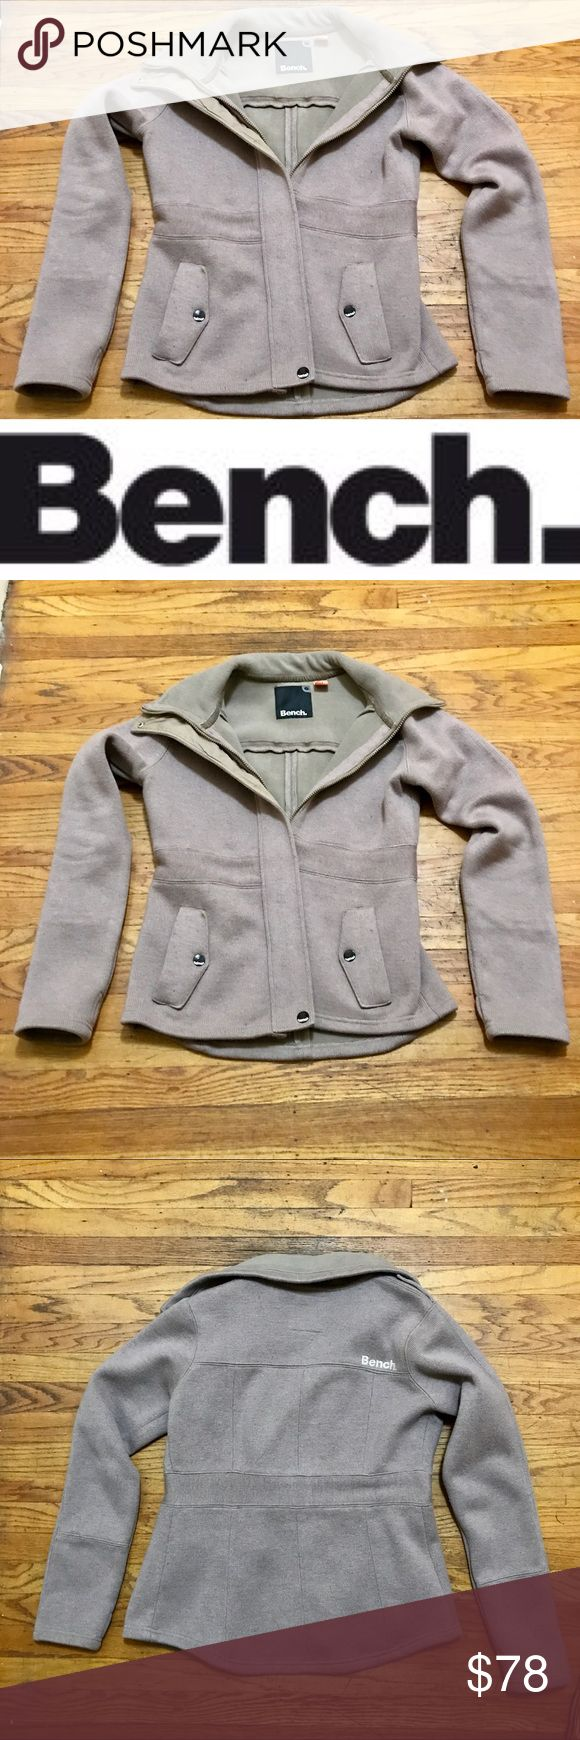 Wool Blend Fleece Lined Jacket from Bench Beautiful tan-ish/cement color wool knit, fleece lined winter jacket from Bench. Tagged as a large, but definitely a slim fitting large (please see measurements). This is a great jacket I loved and wore for a couple years but is in EUC, just picked up fresh from the dry cleaners ($15 saved for you!) This jacket has a funnel collar and thumb holes, plus the contrasting band around the waist is slimming! It is thin but warm. Does have a minor amount of…